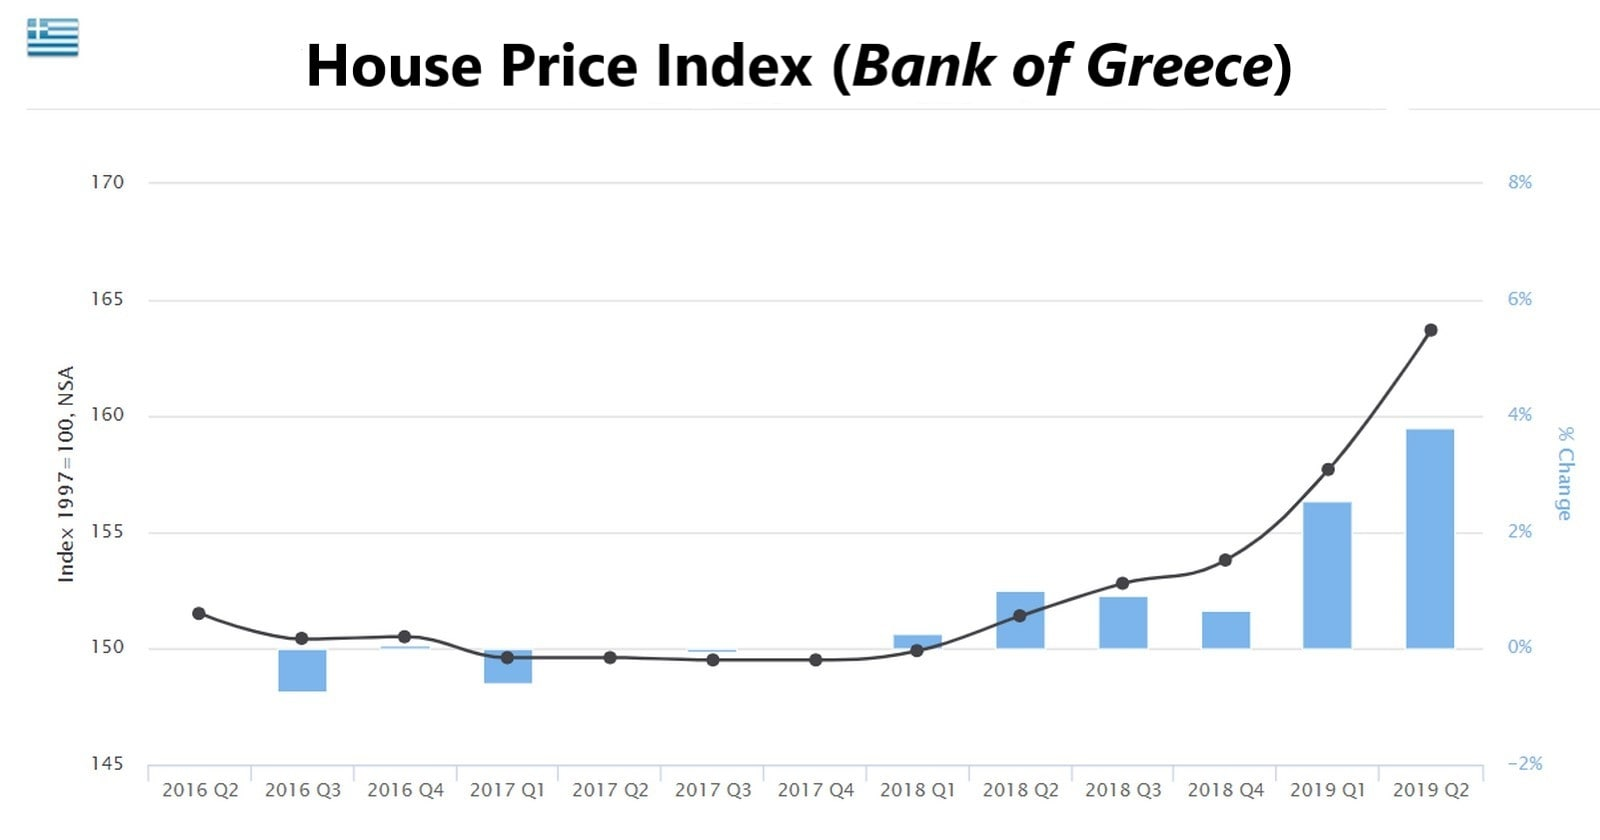 House Price Index Evolution - Bank of Greece